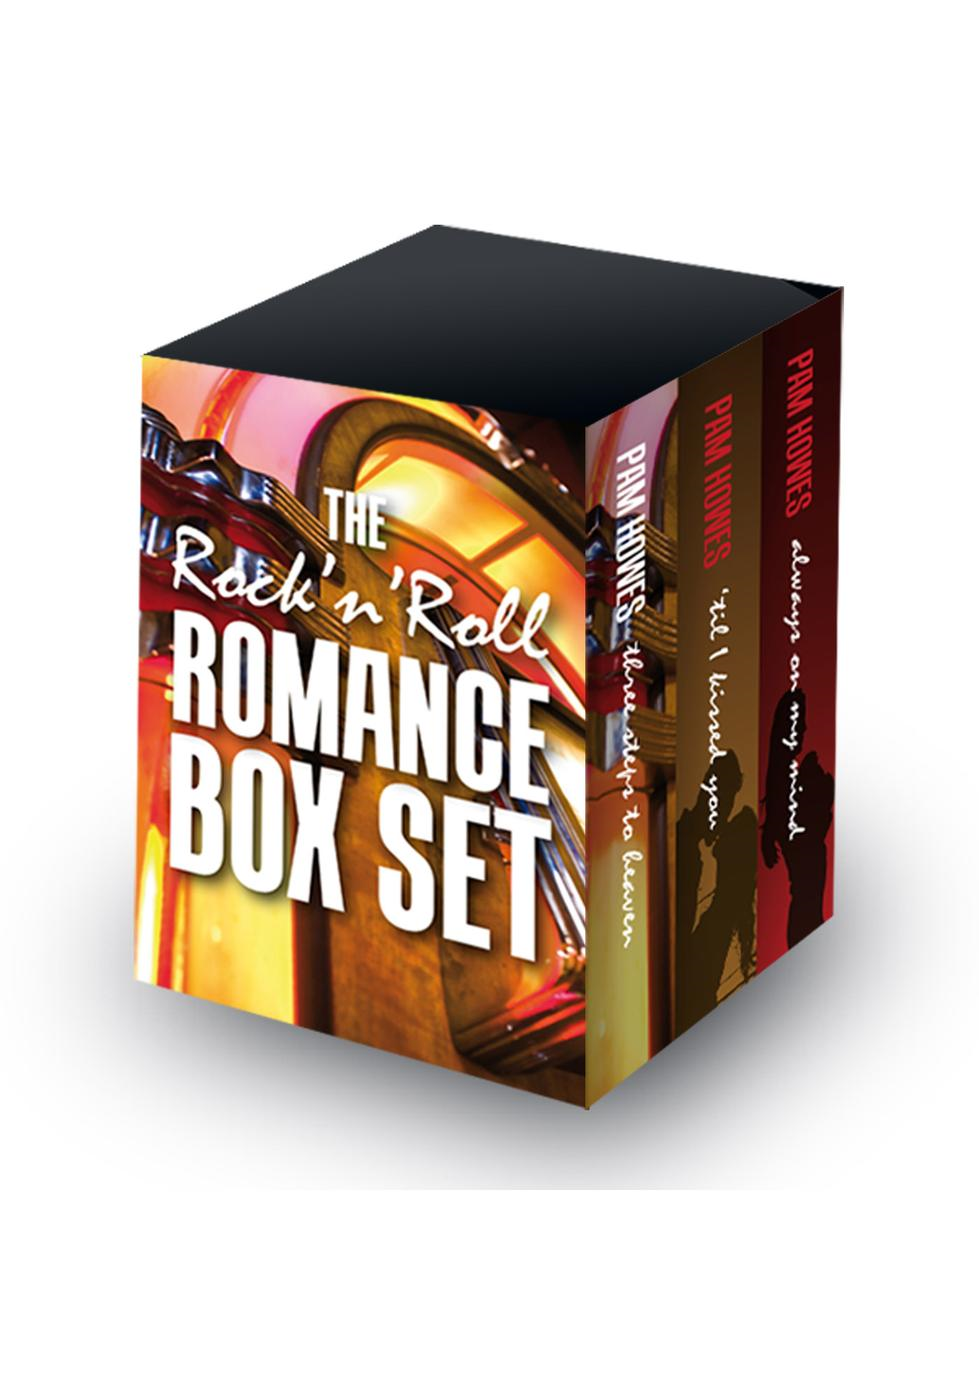 The Rock'n'Roll Romance Box Set (Pam Howes Rock'n'Roll Romance Series)